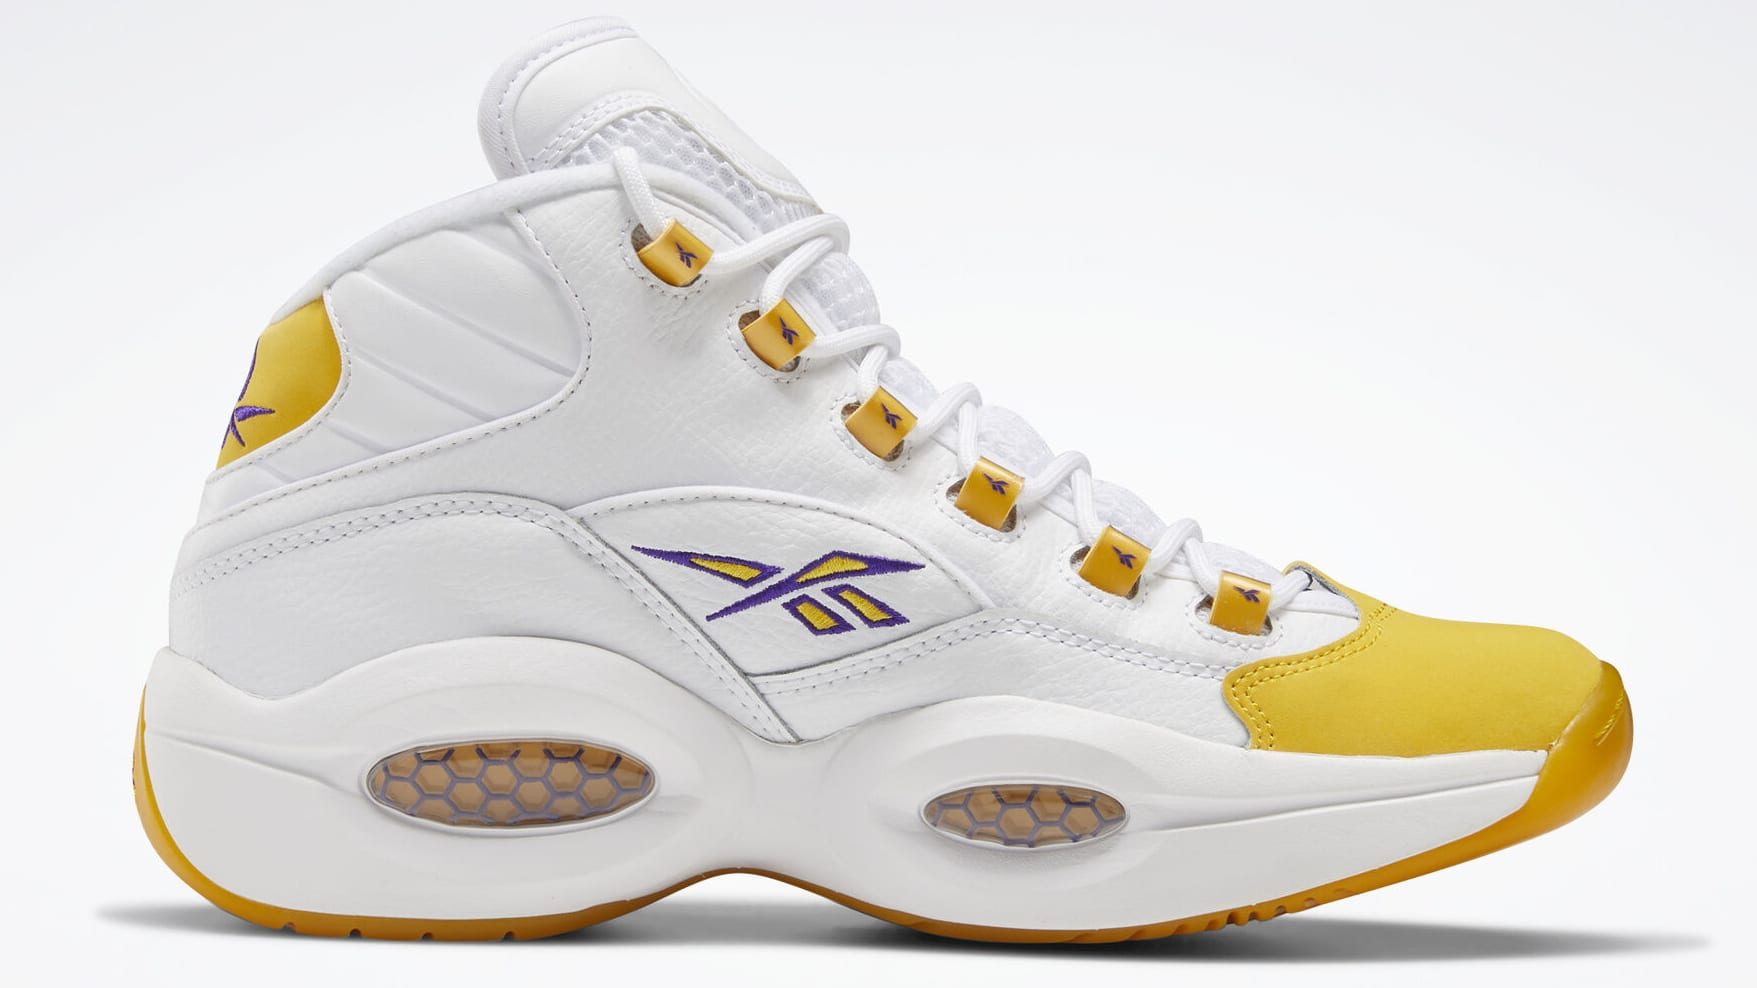 Reebok Question Kobe Yellow Toe Release Date Medial